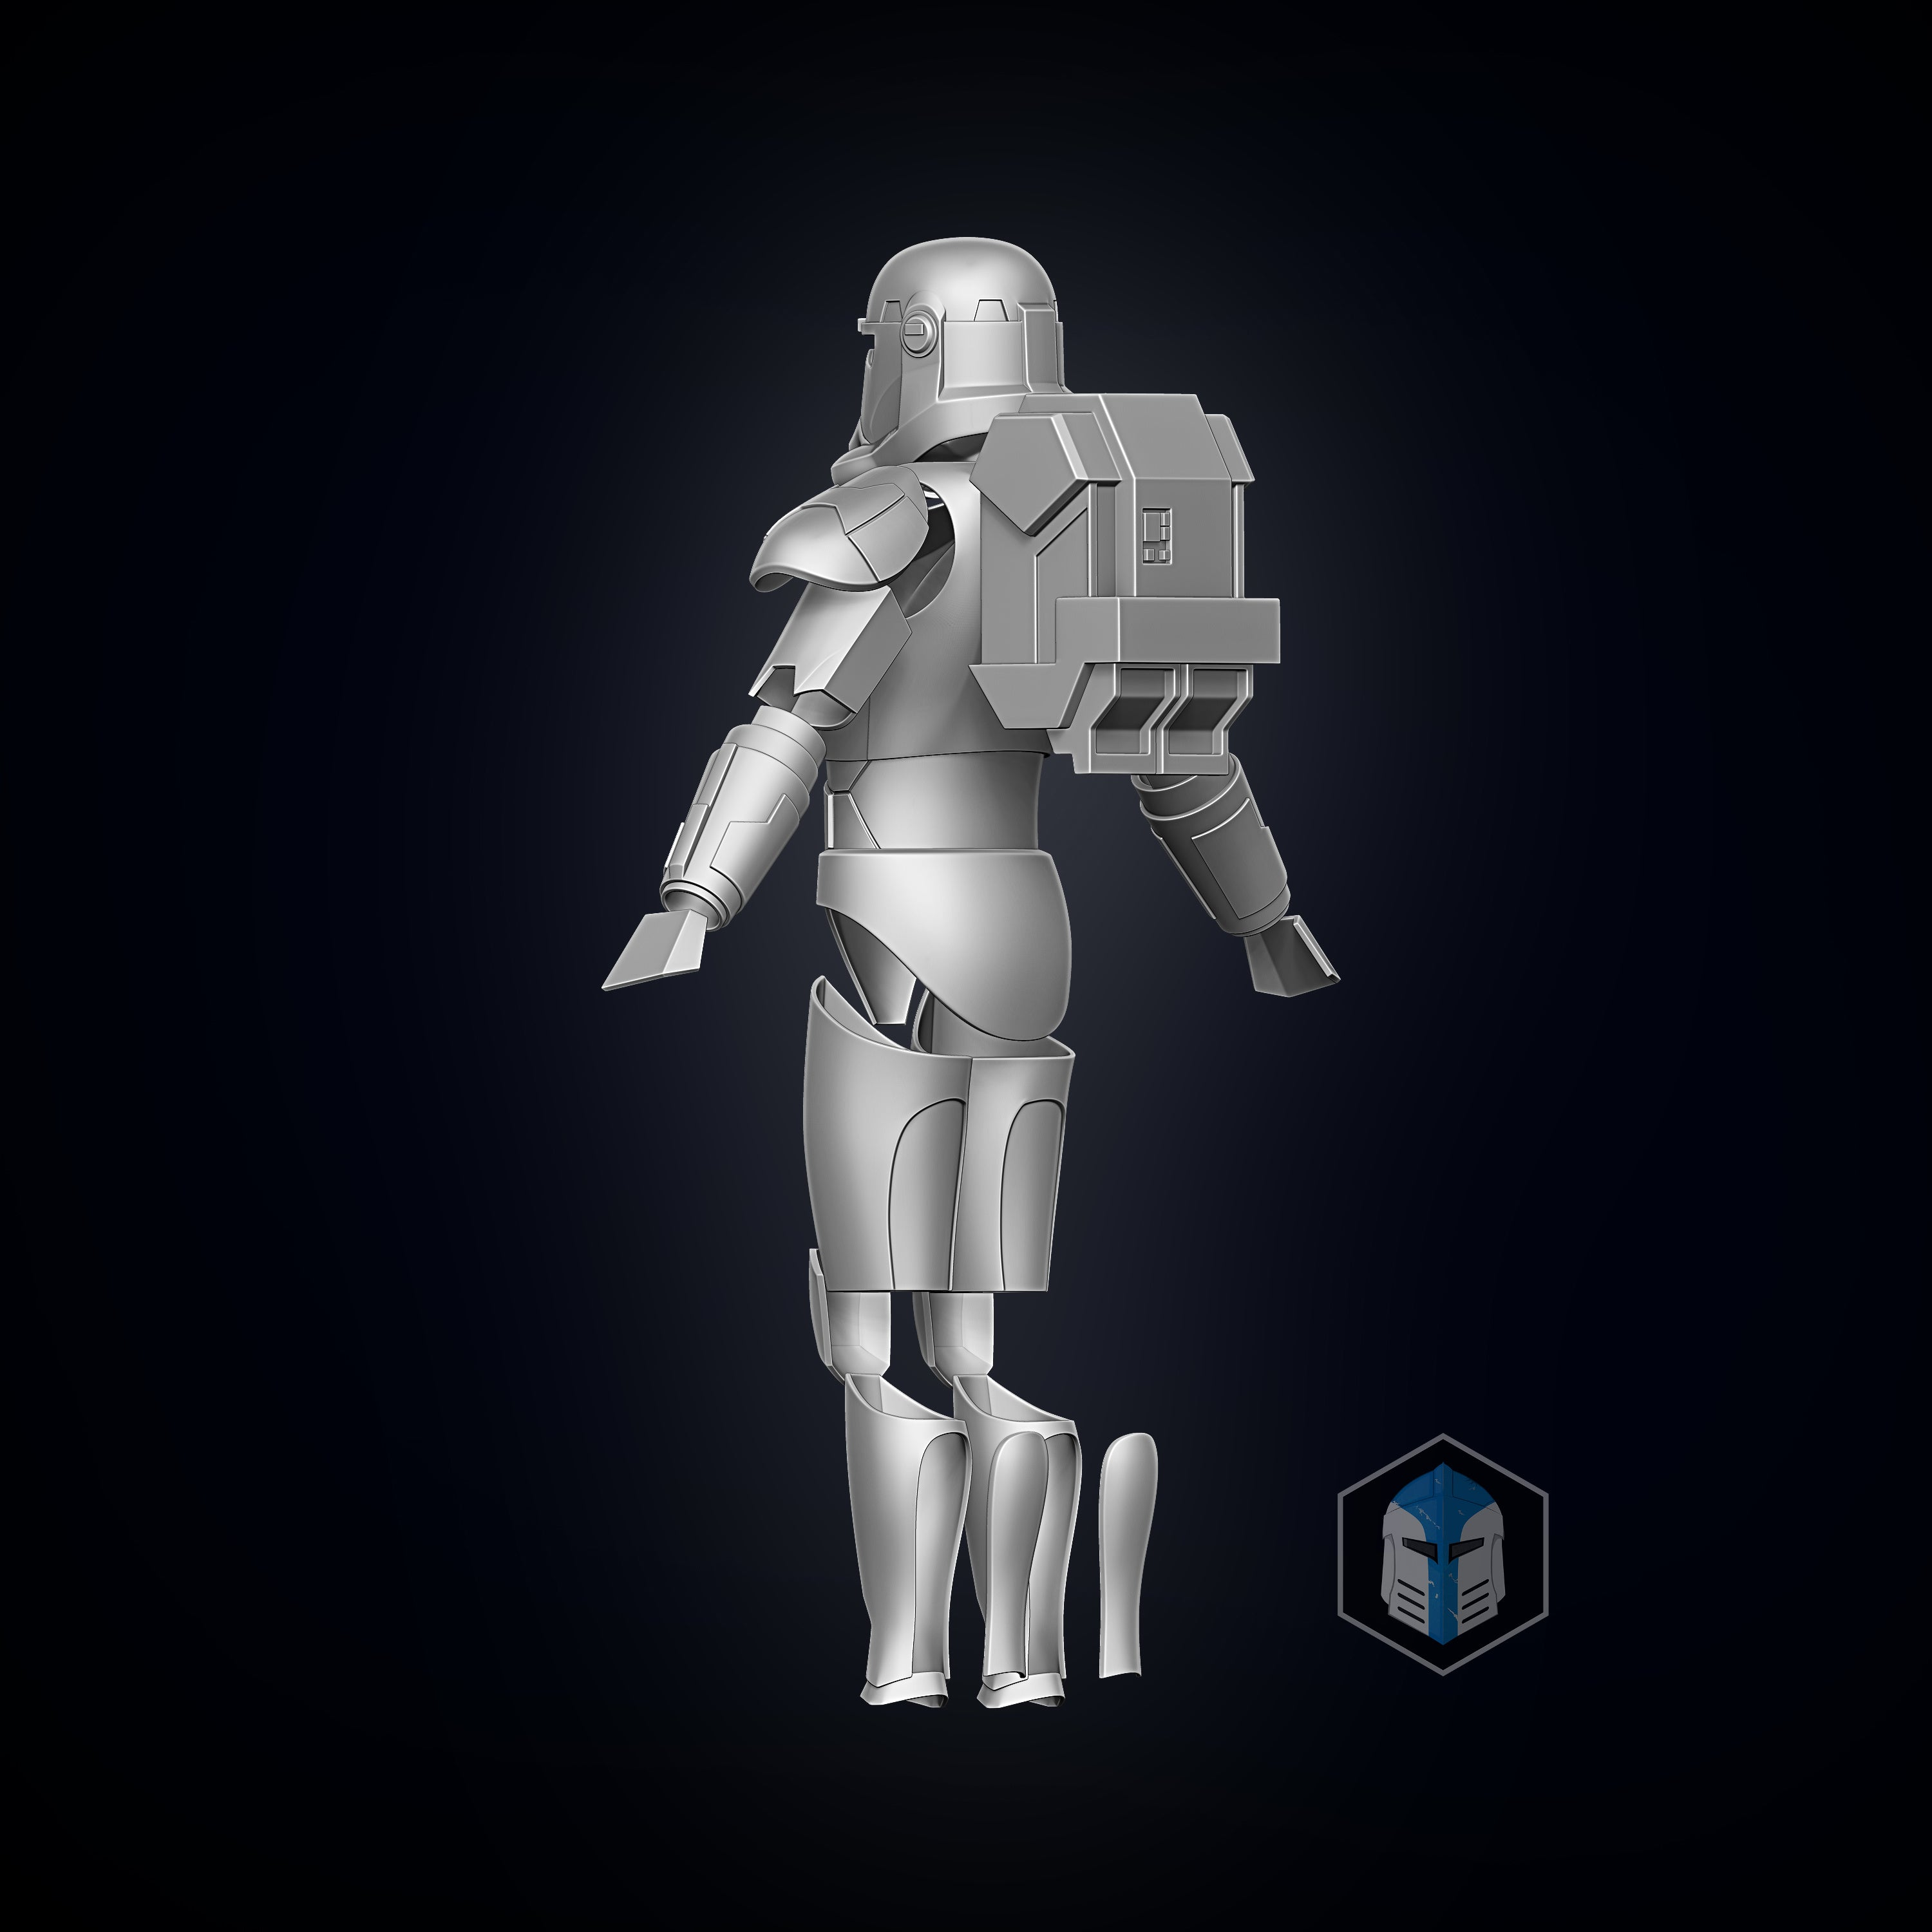 Bad Batch Hunter Armor - 3D Print Files - Galactic Armory